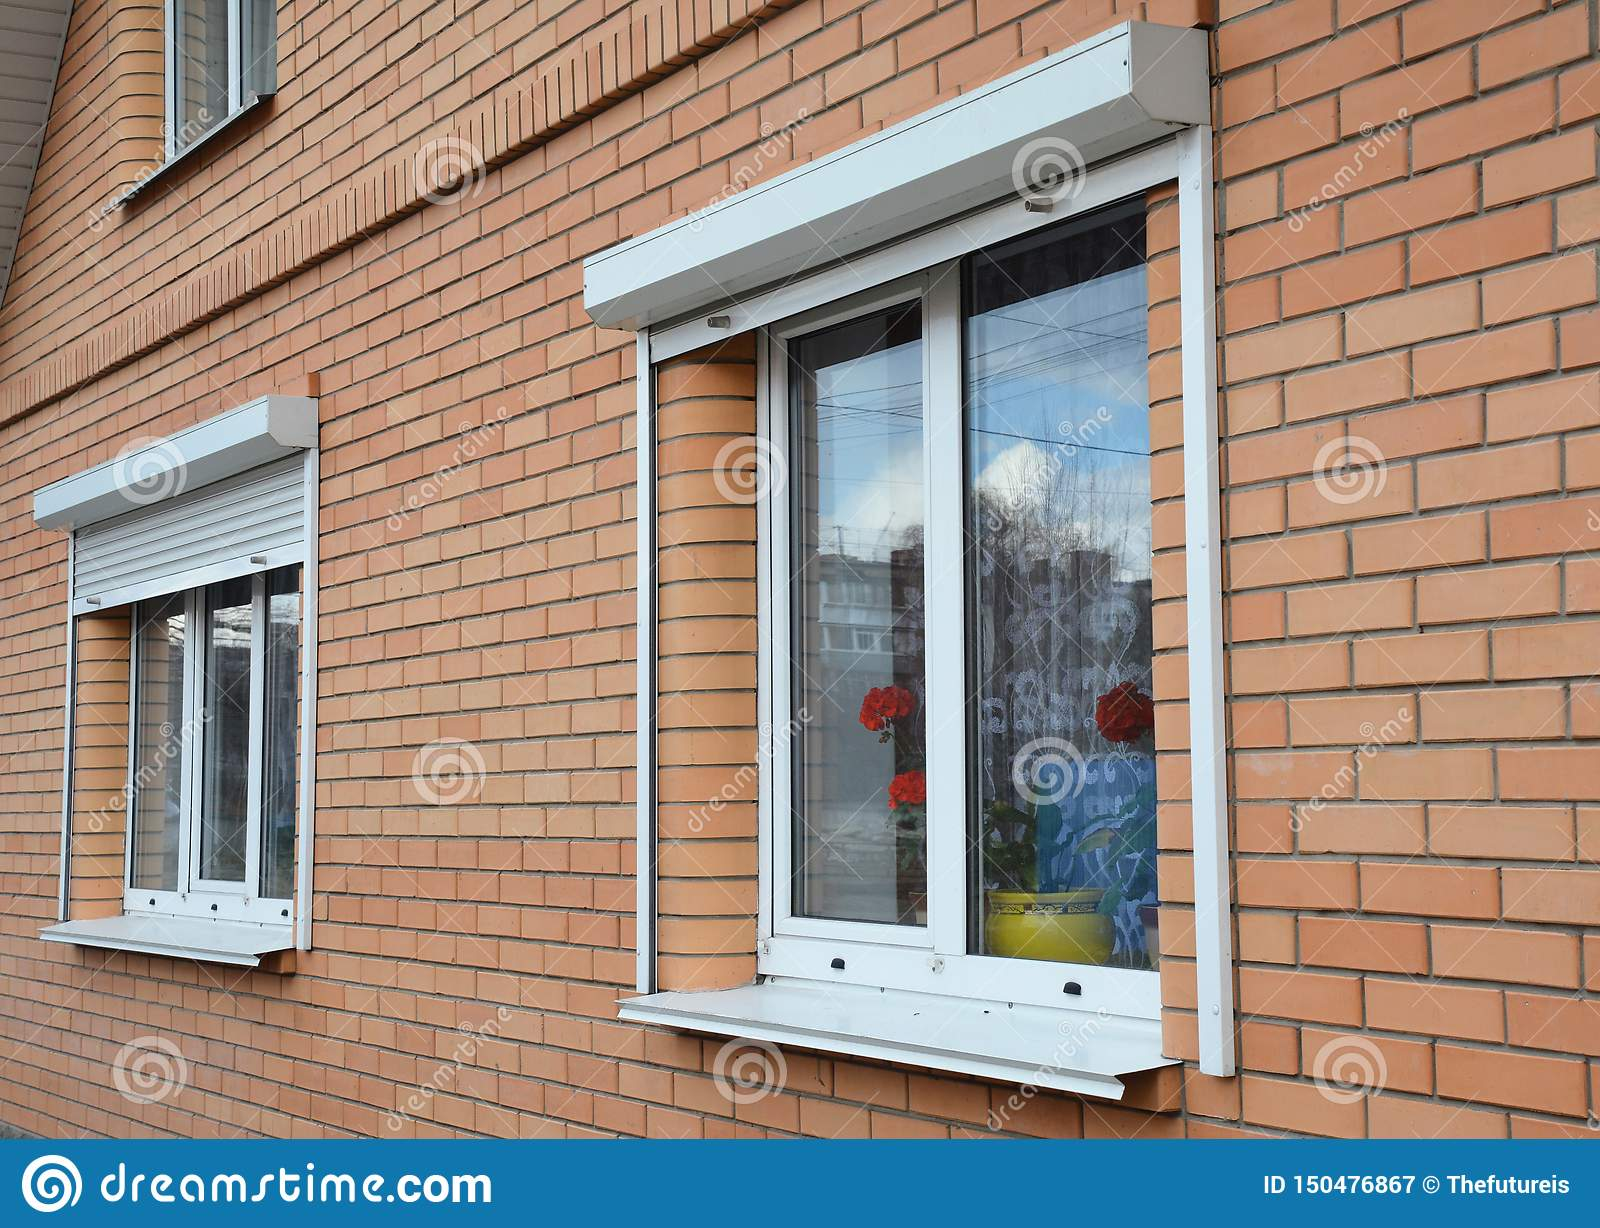 Rolling Shutters House Windows Protection Brick House With